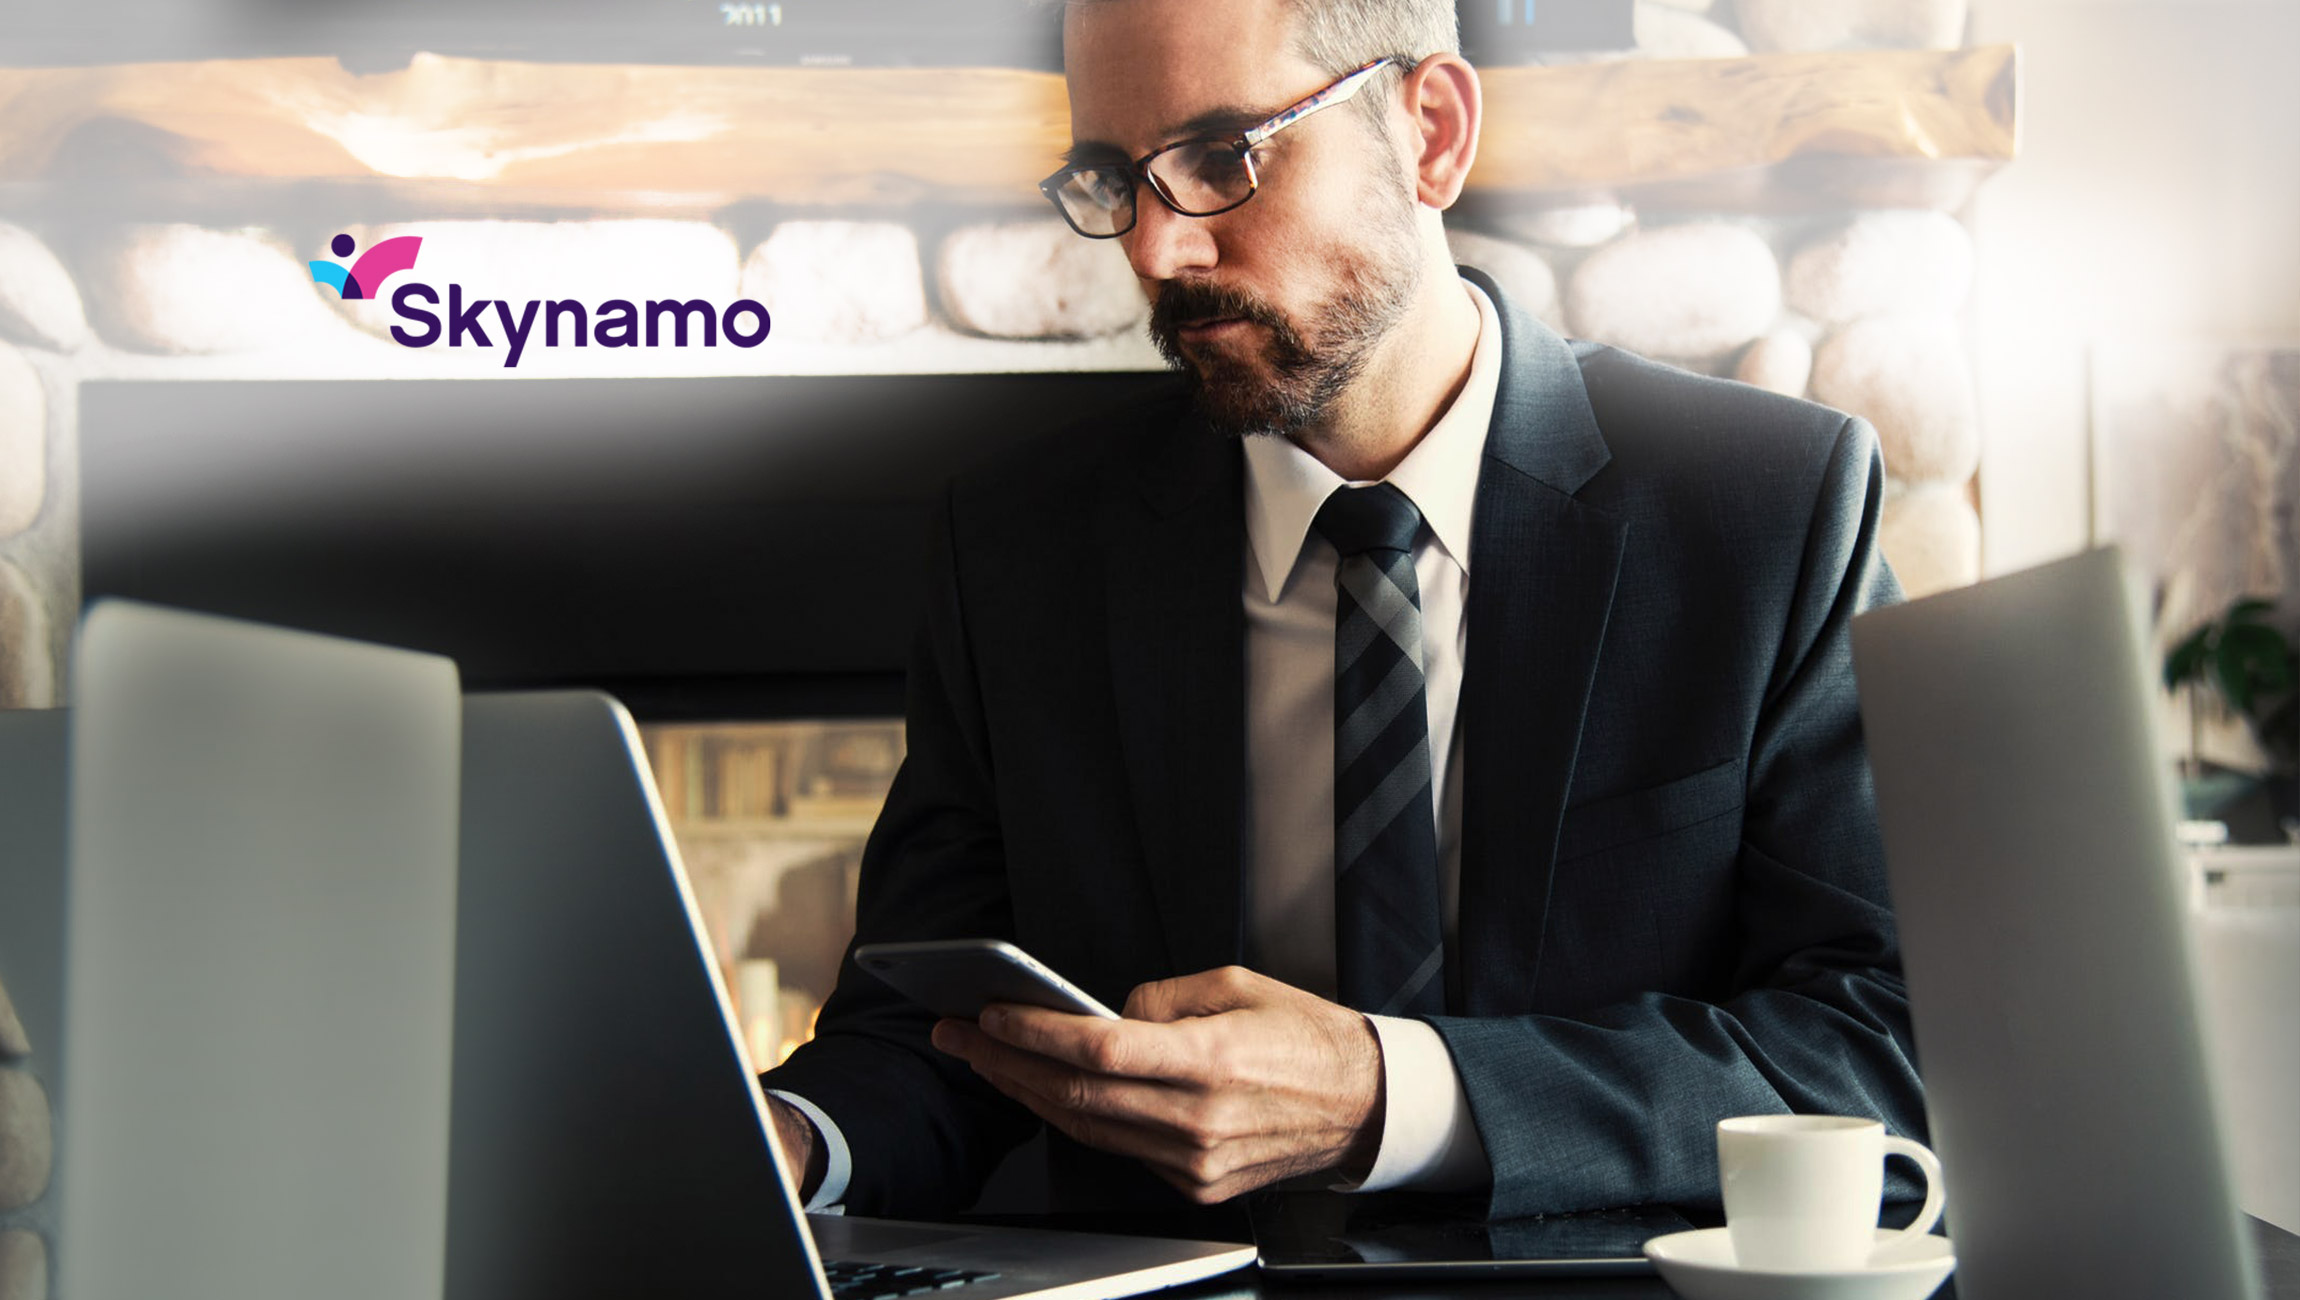 Skynamo Study: Over a Third of Field Sales Reps Feel Hindered by Technology